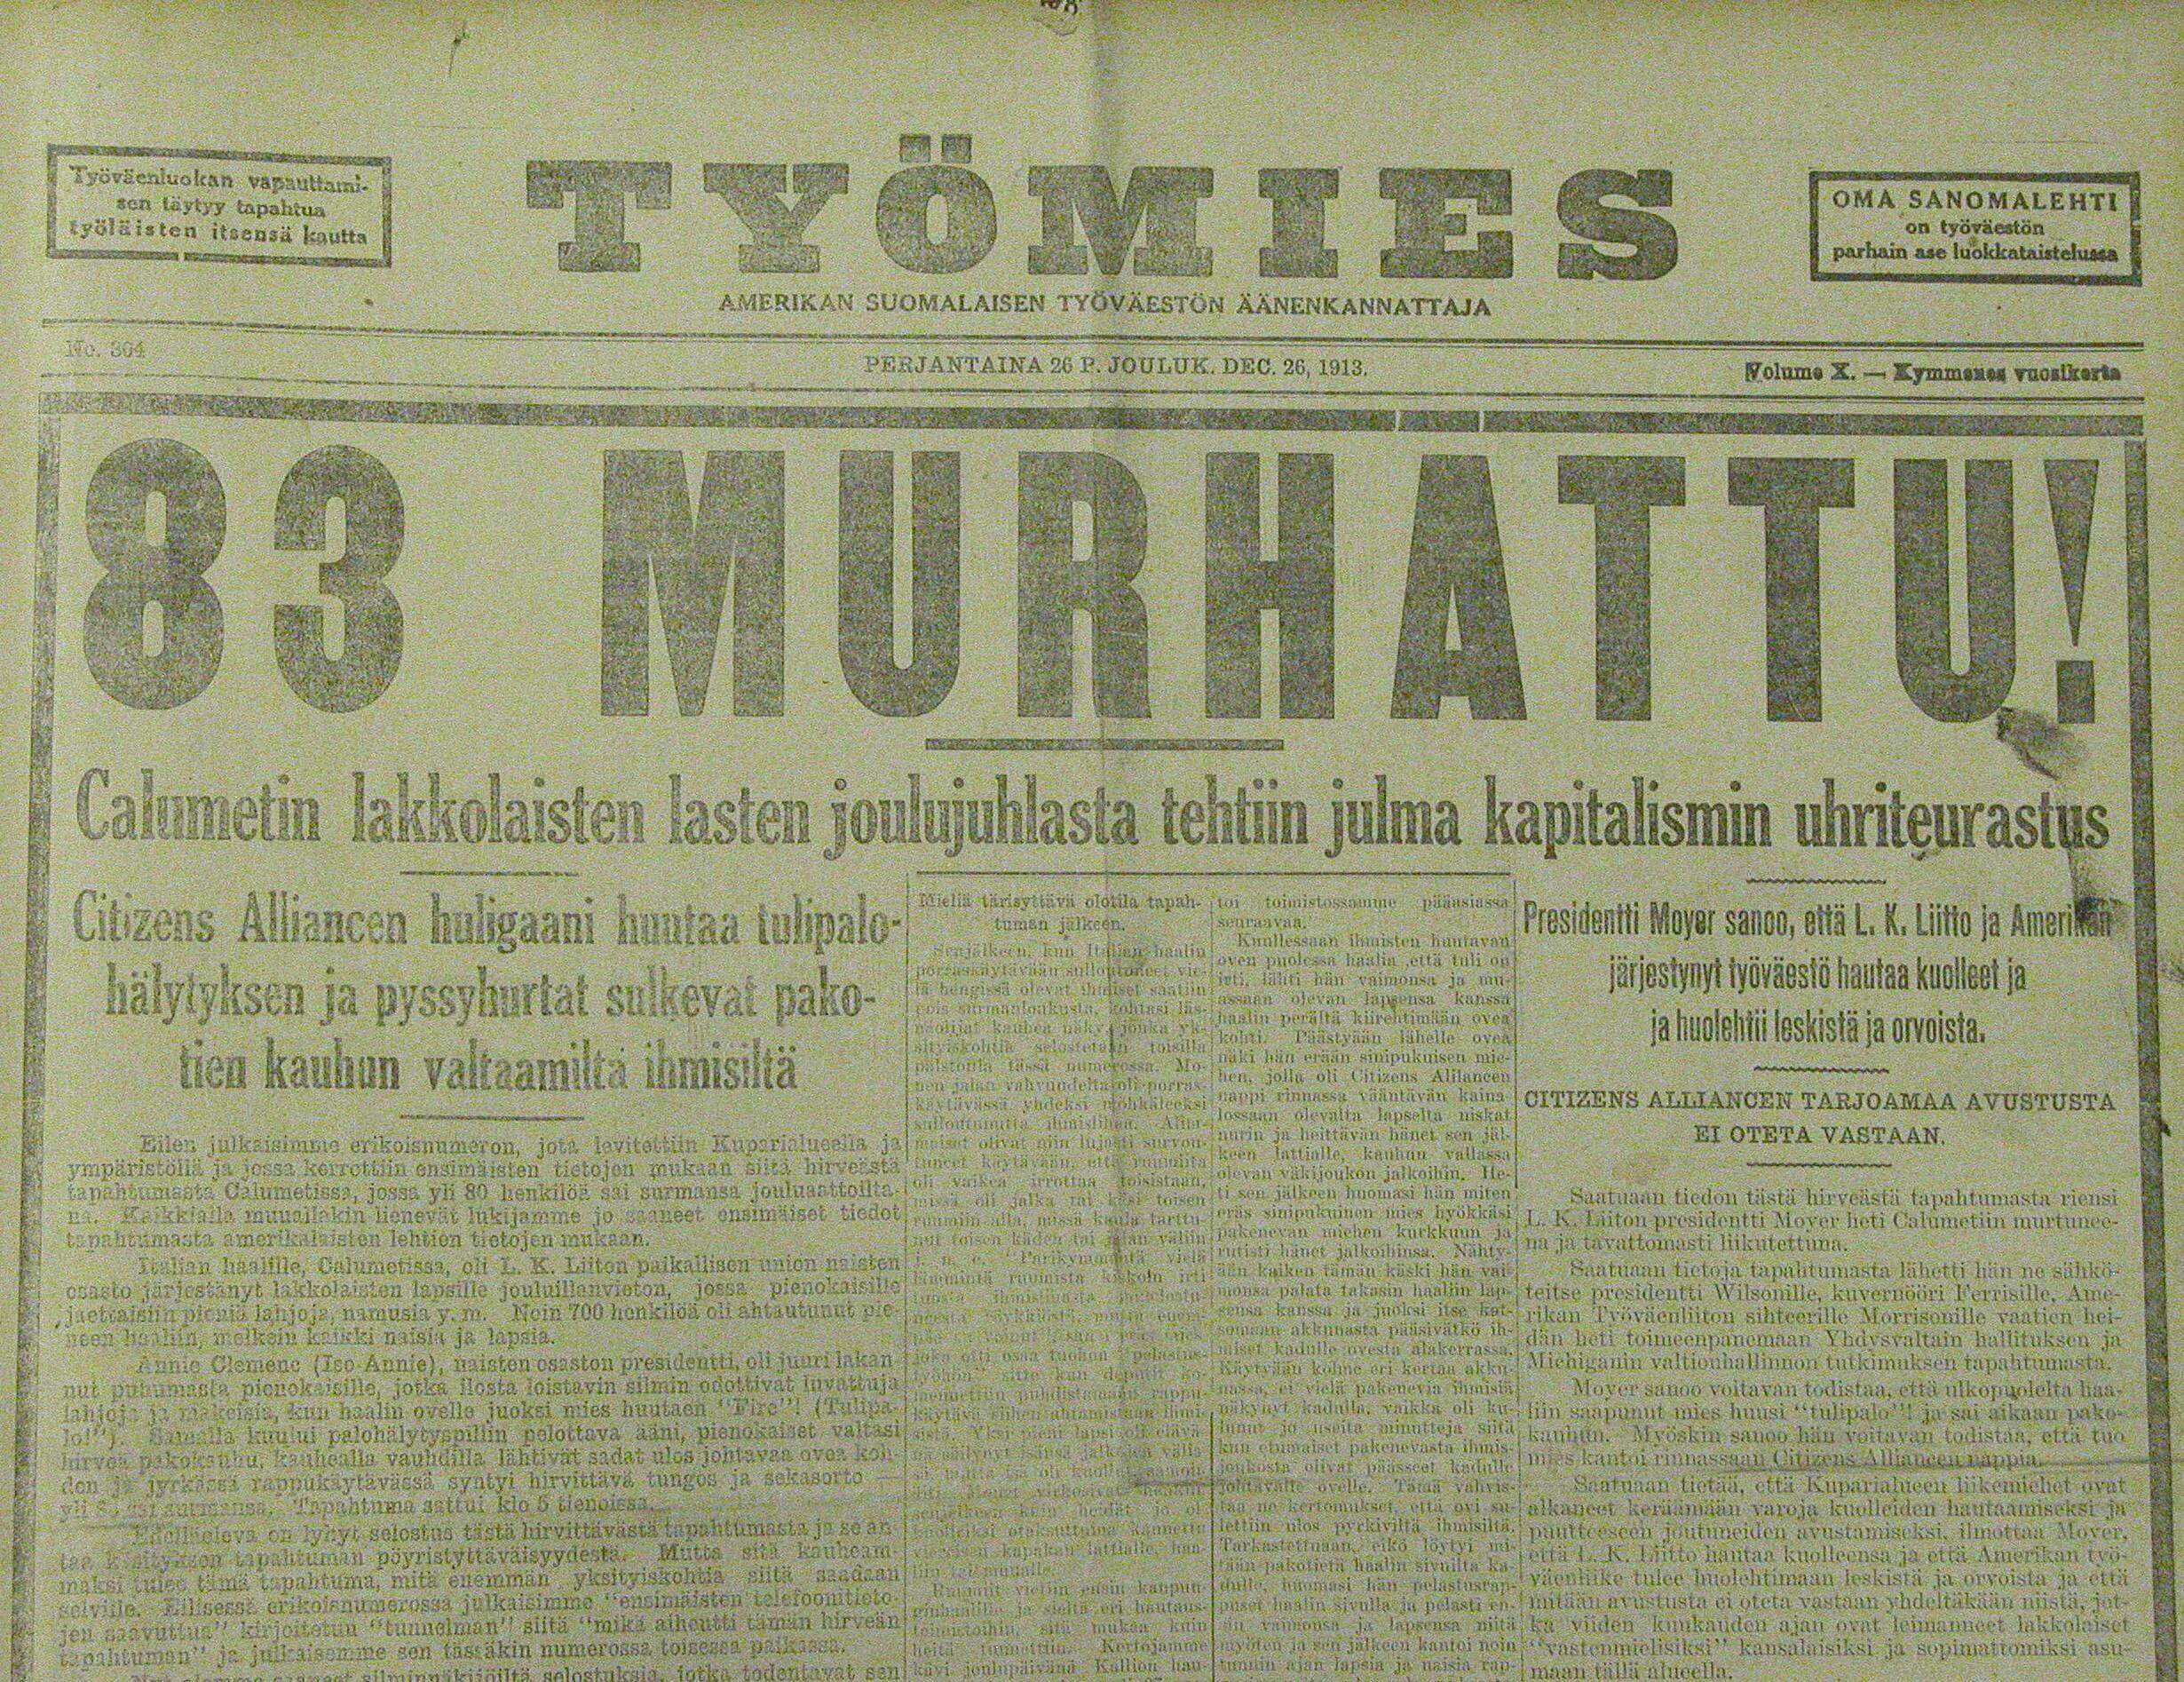 Headline from Tyo¨mies newspaper, December 26, 1913. The newspaper's staff, like many other strikers and socialists, believed the Italian Hall Tragedy was mass murder.